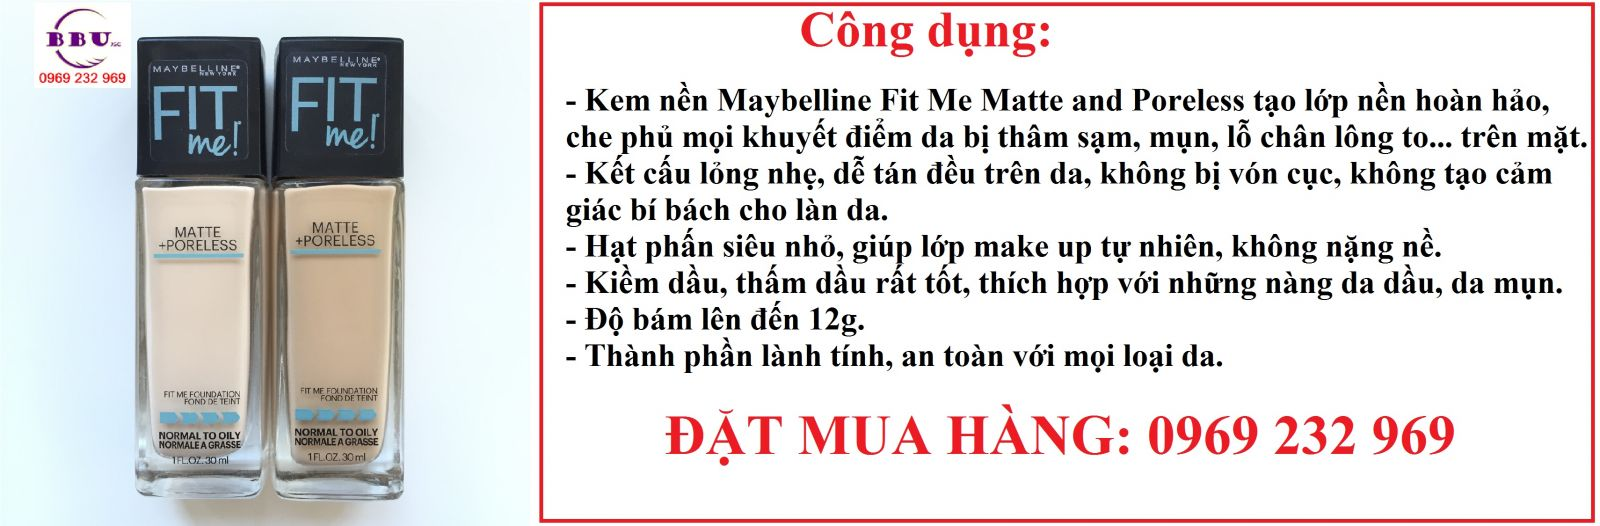 Kem nền Maybelline Fit Me Matte and Poreless 30ml của Mỹ